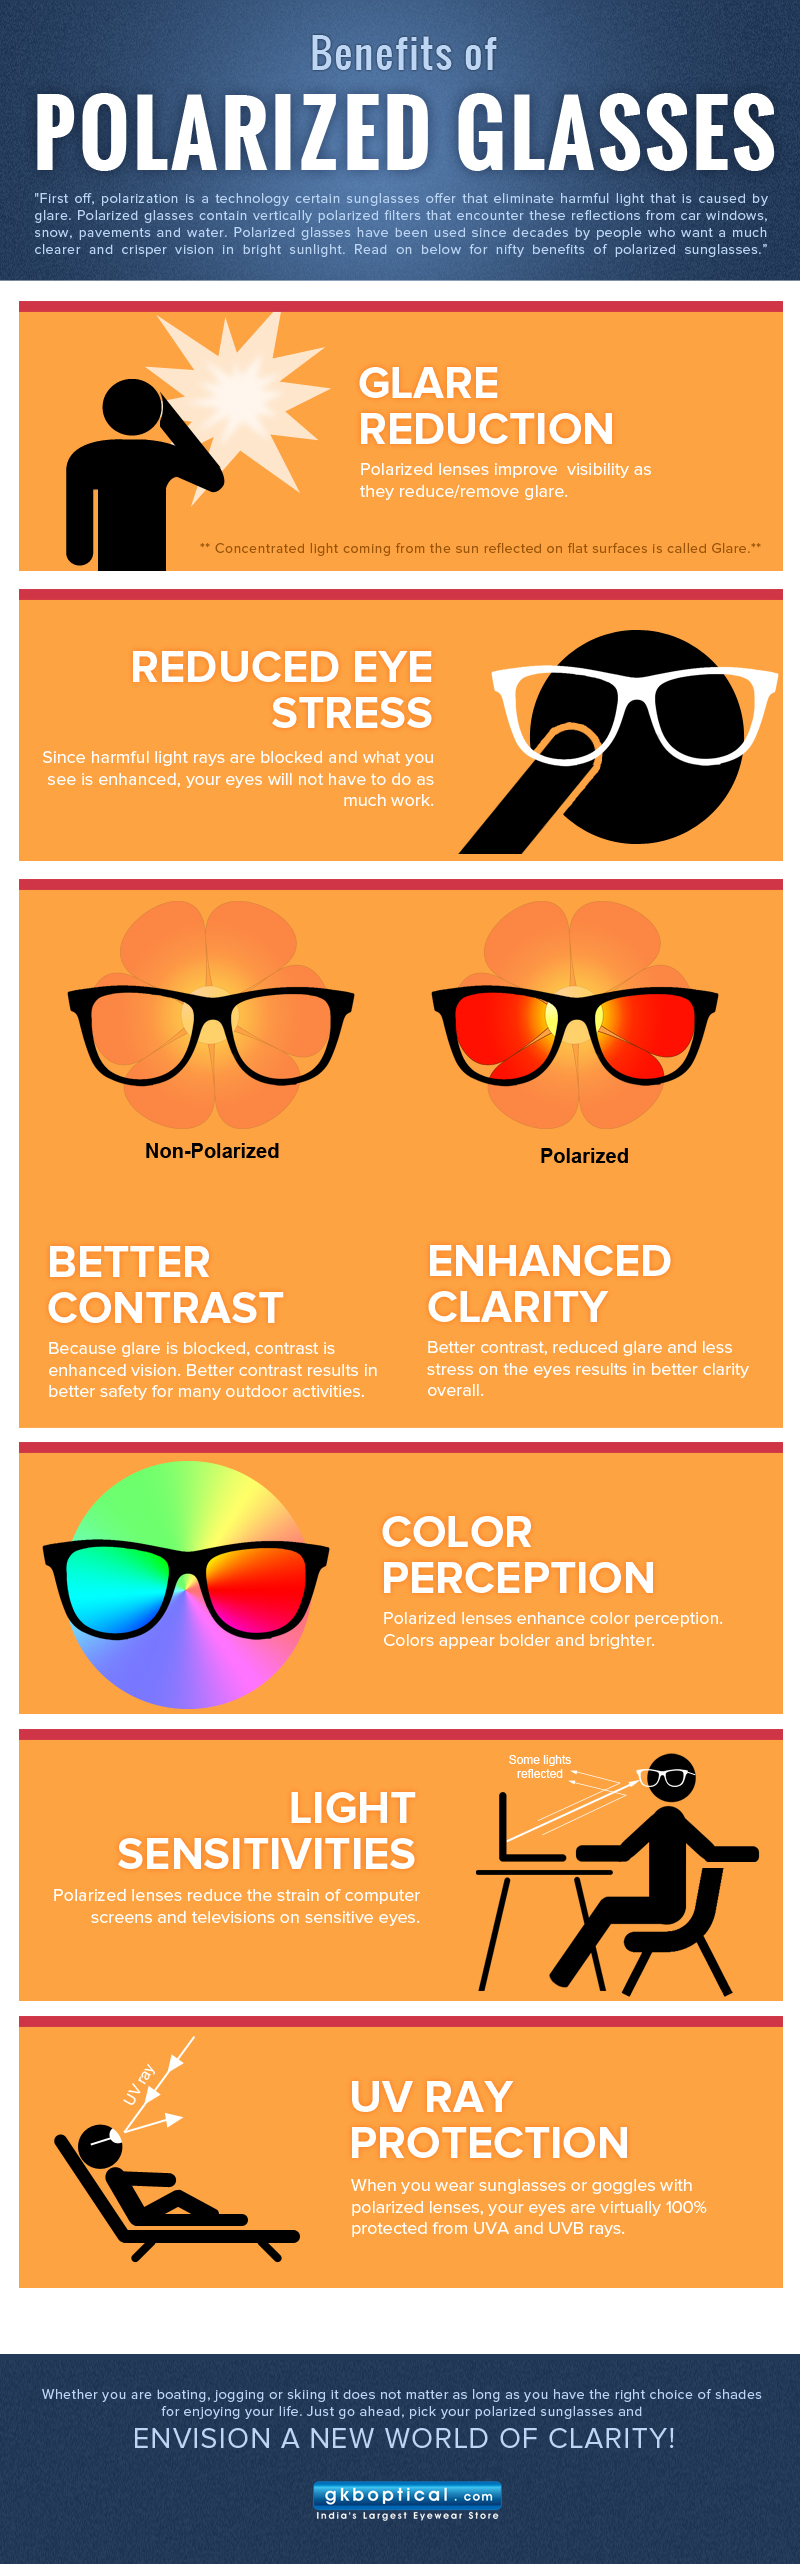 Benefits Of Polarized Glasses